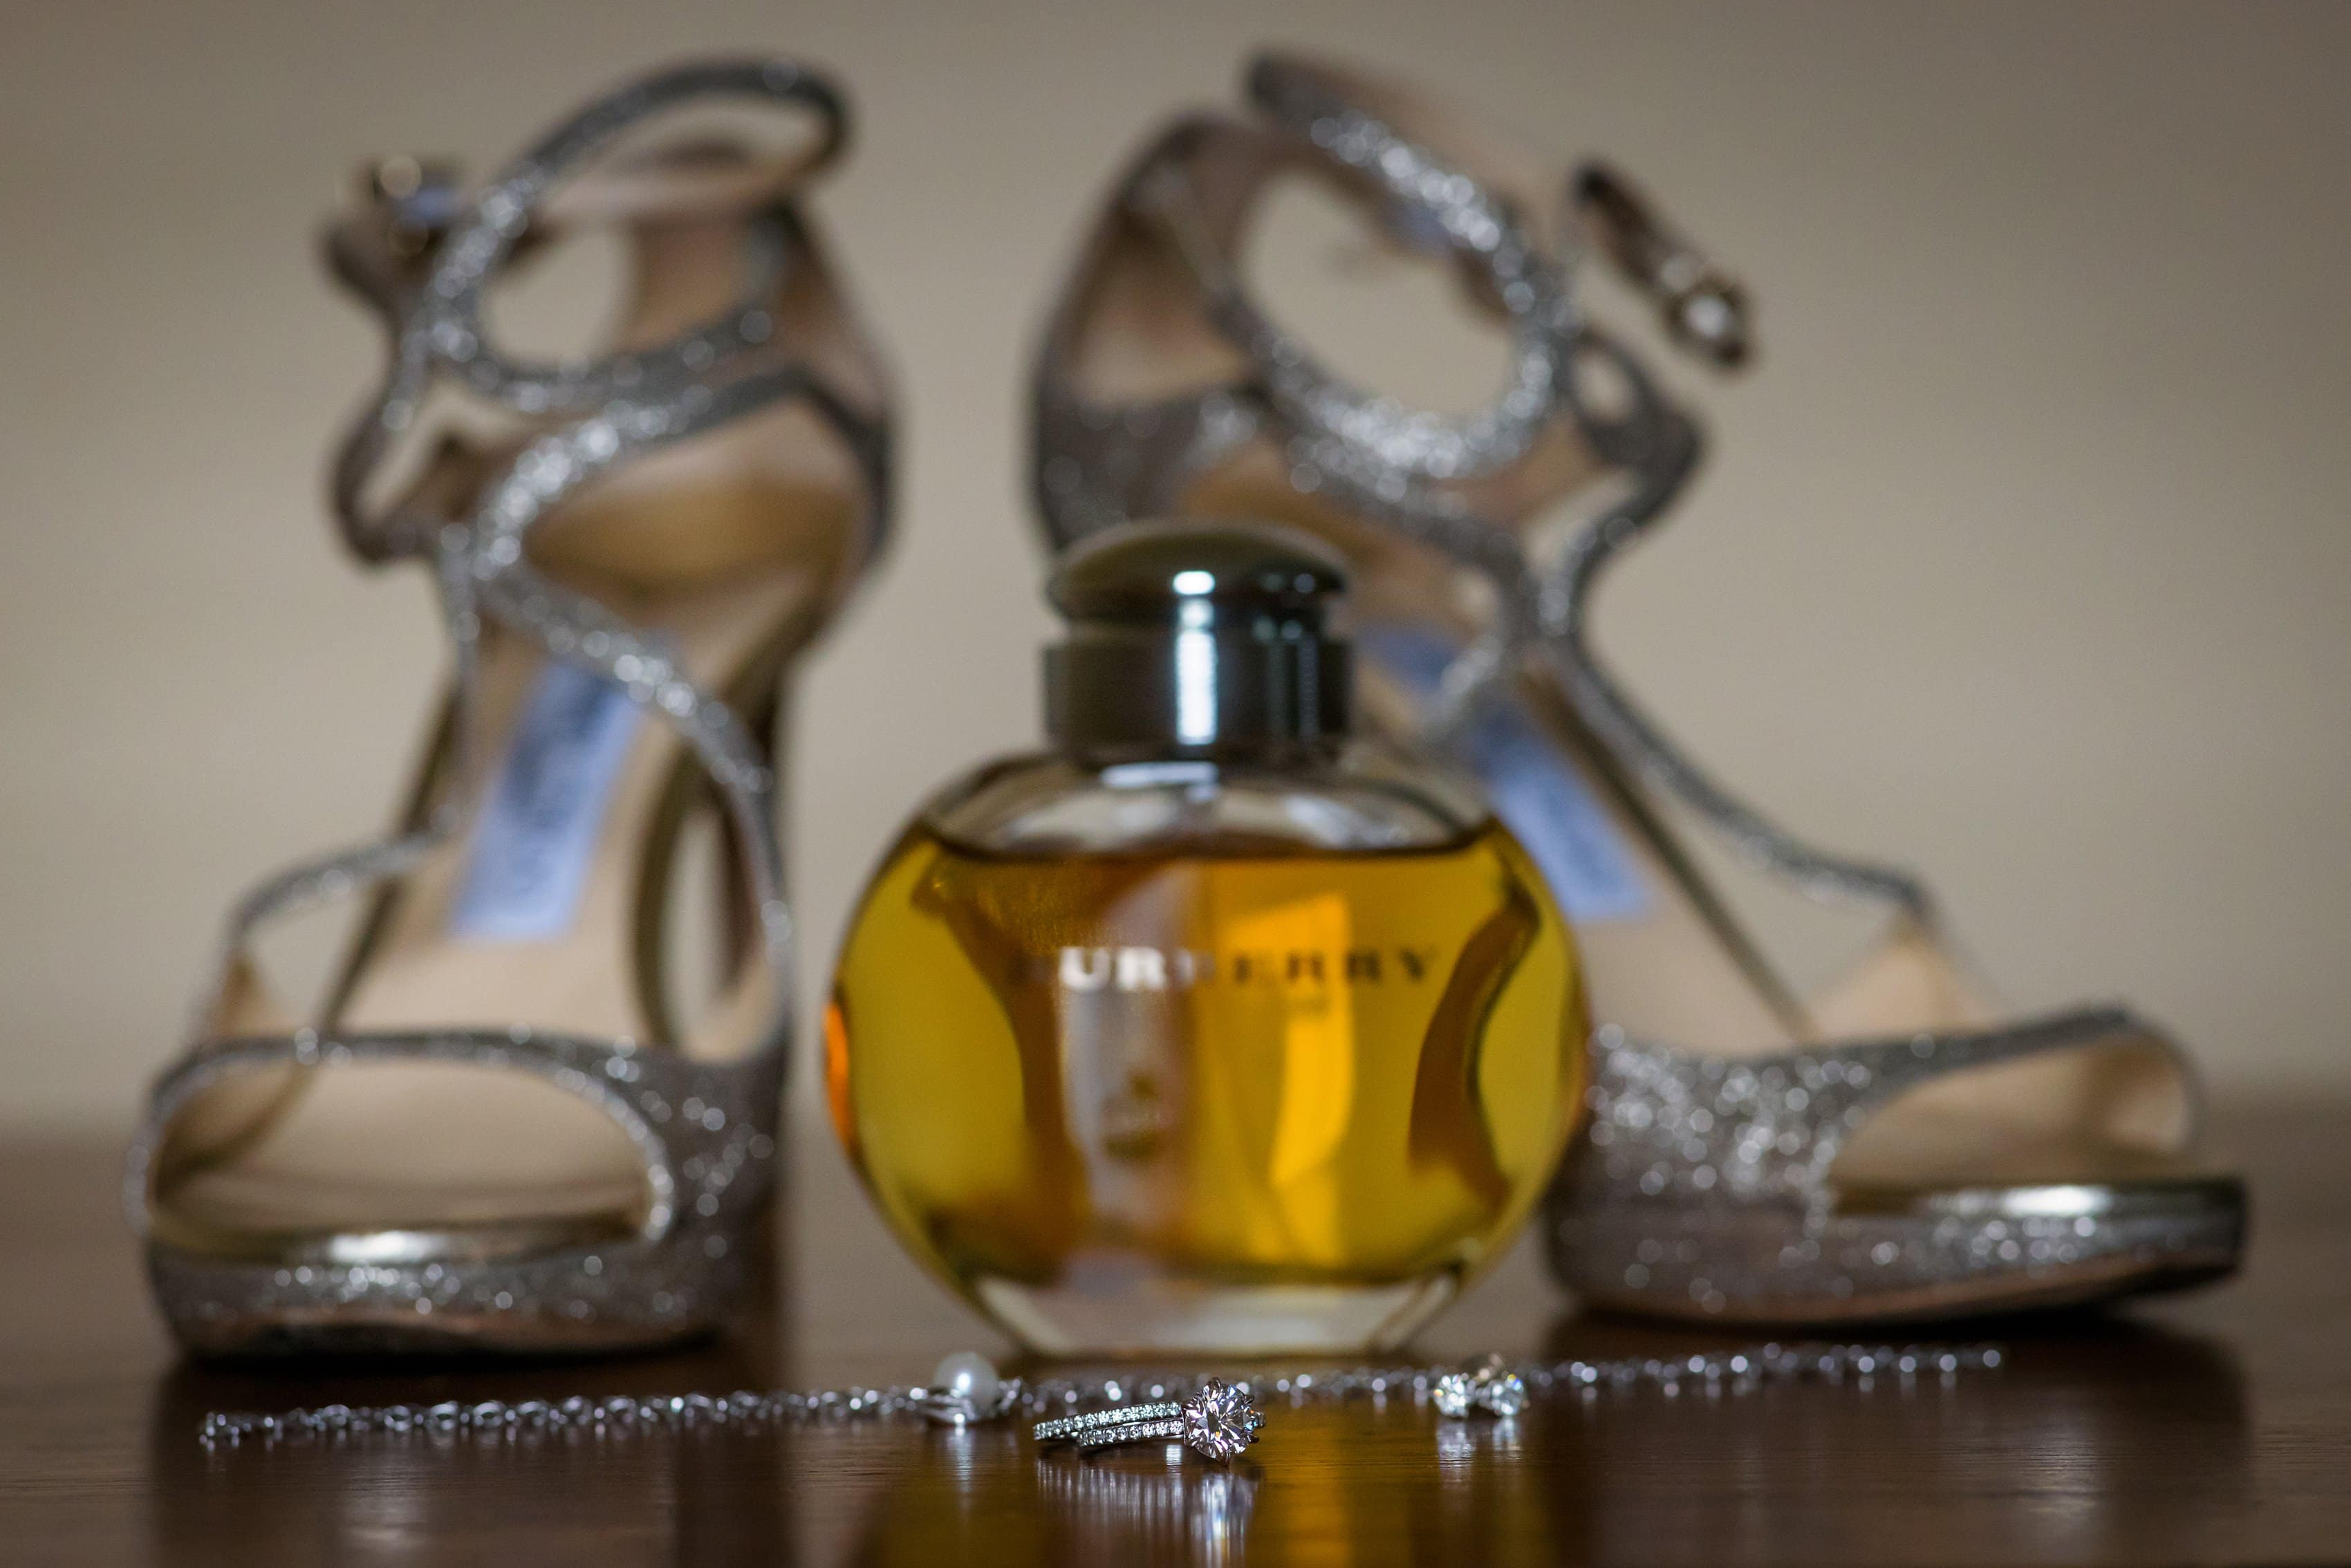 detail image of bride's Jimmy Choo shoes, rings, jewelry and Burberry perfume